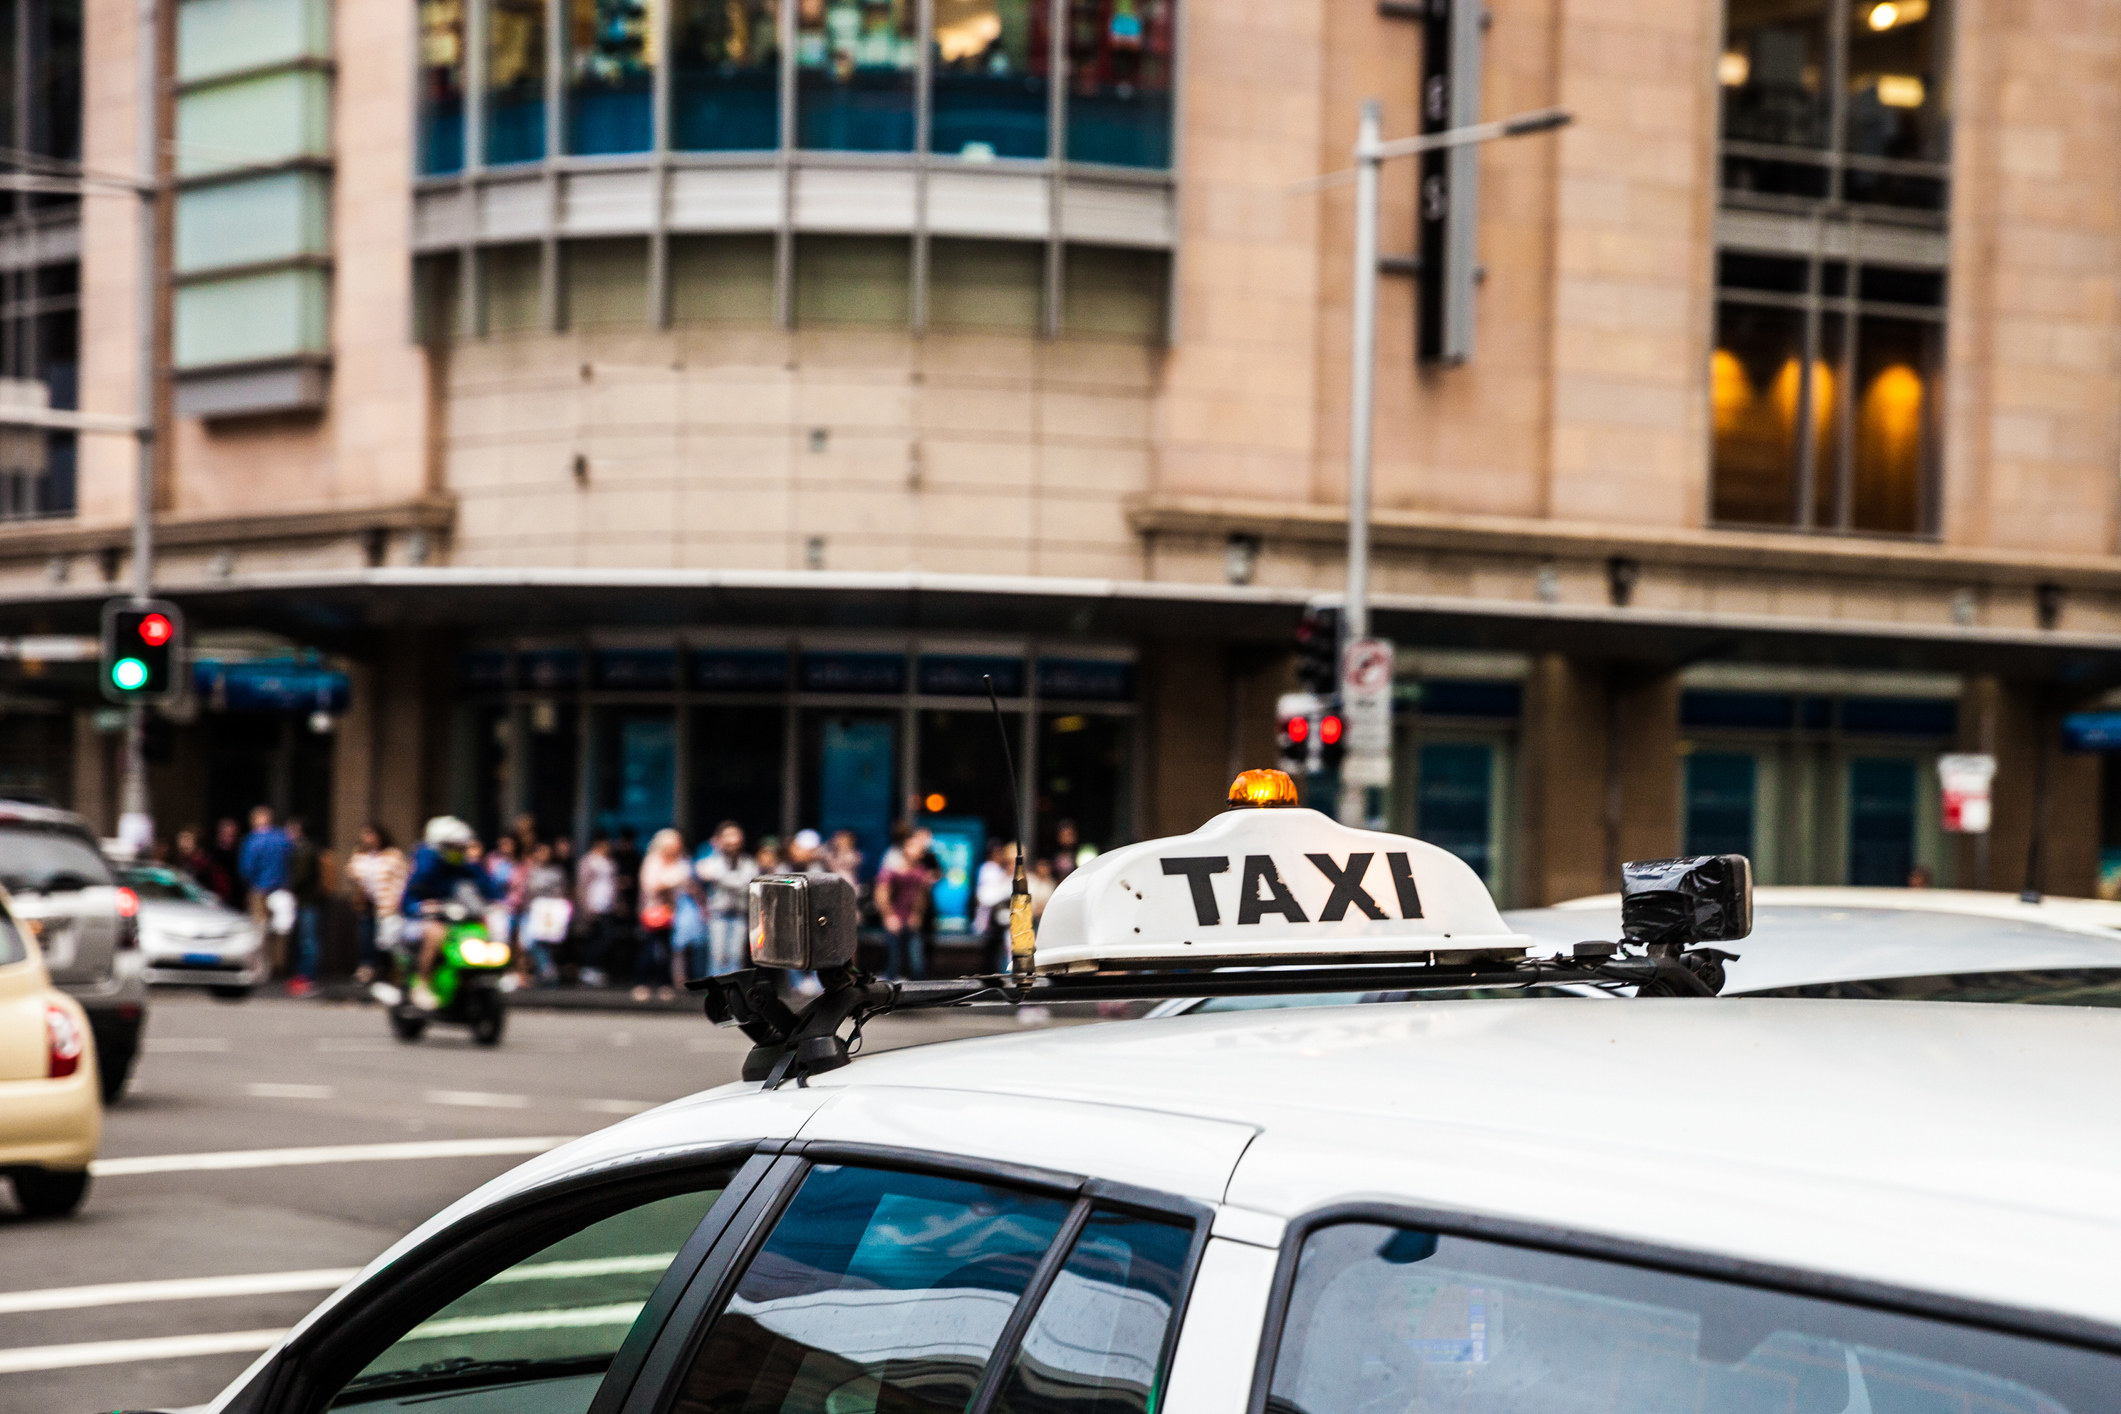 the roof of a taxi driving in Sydney, Australia